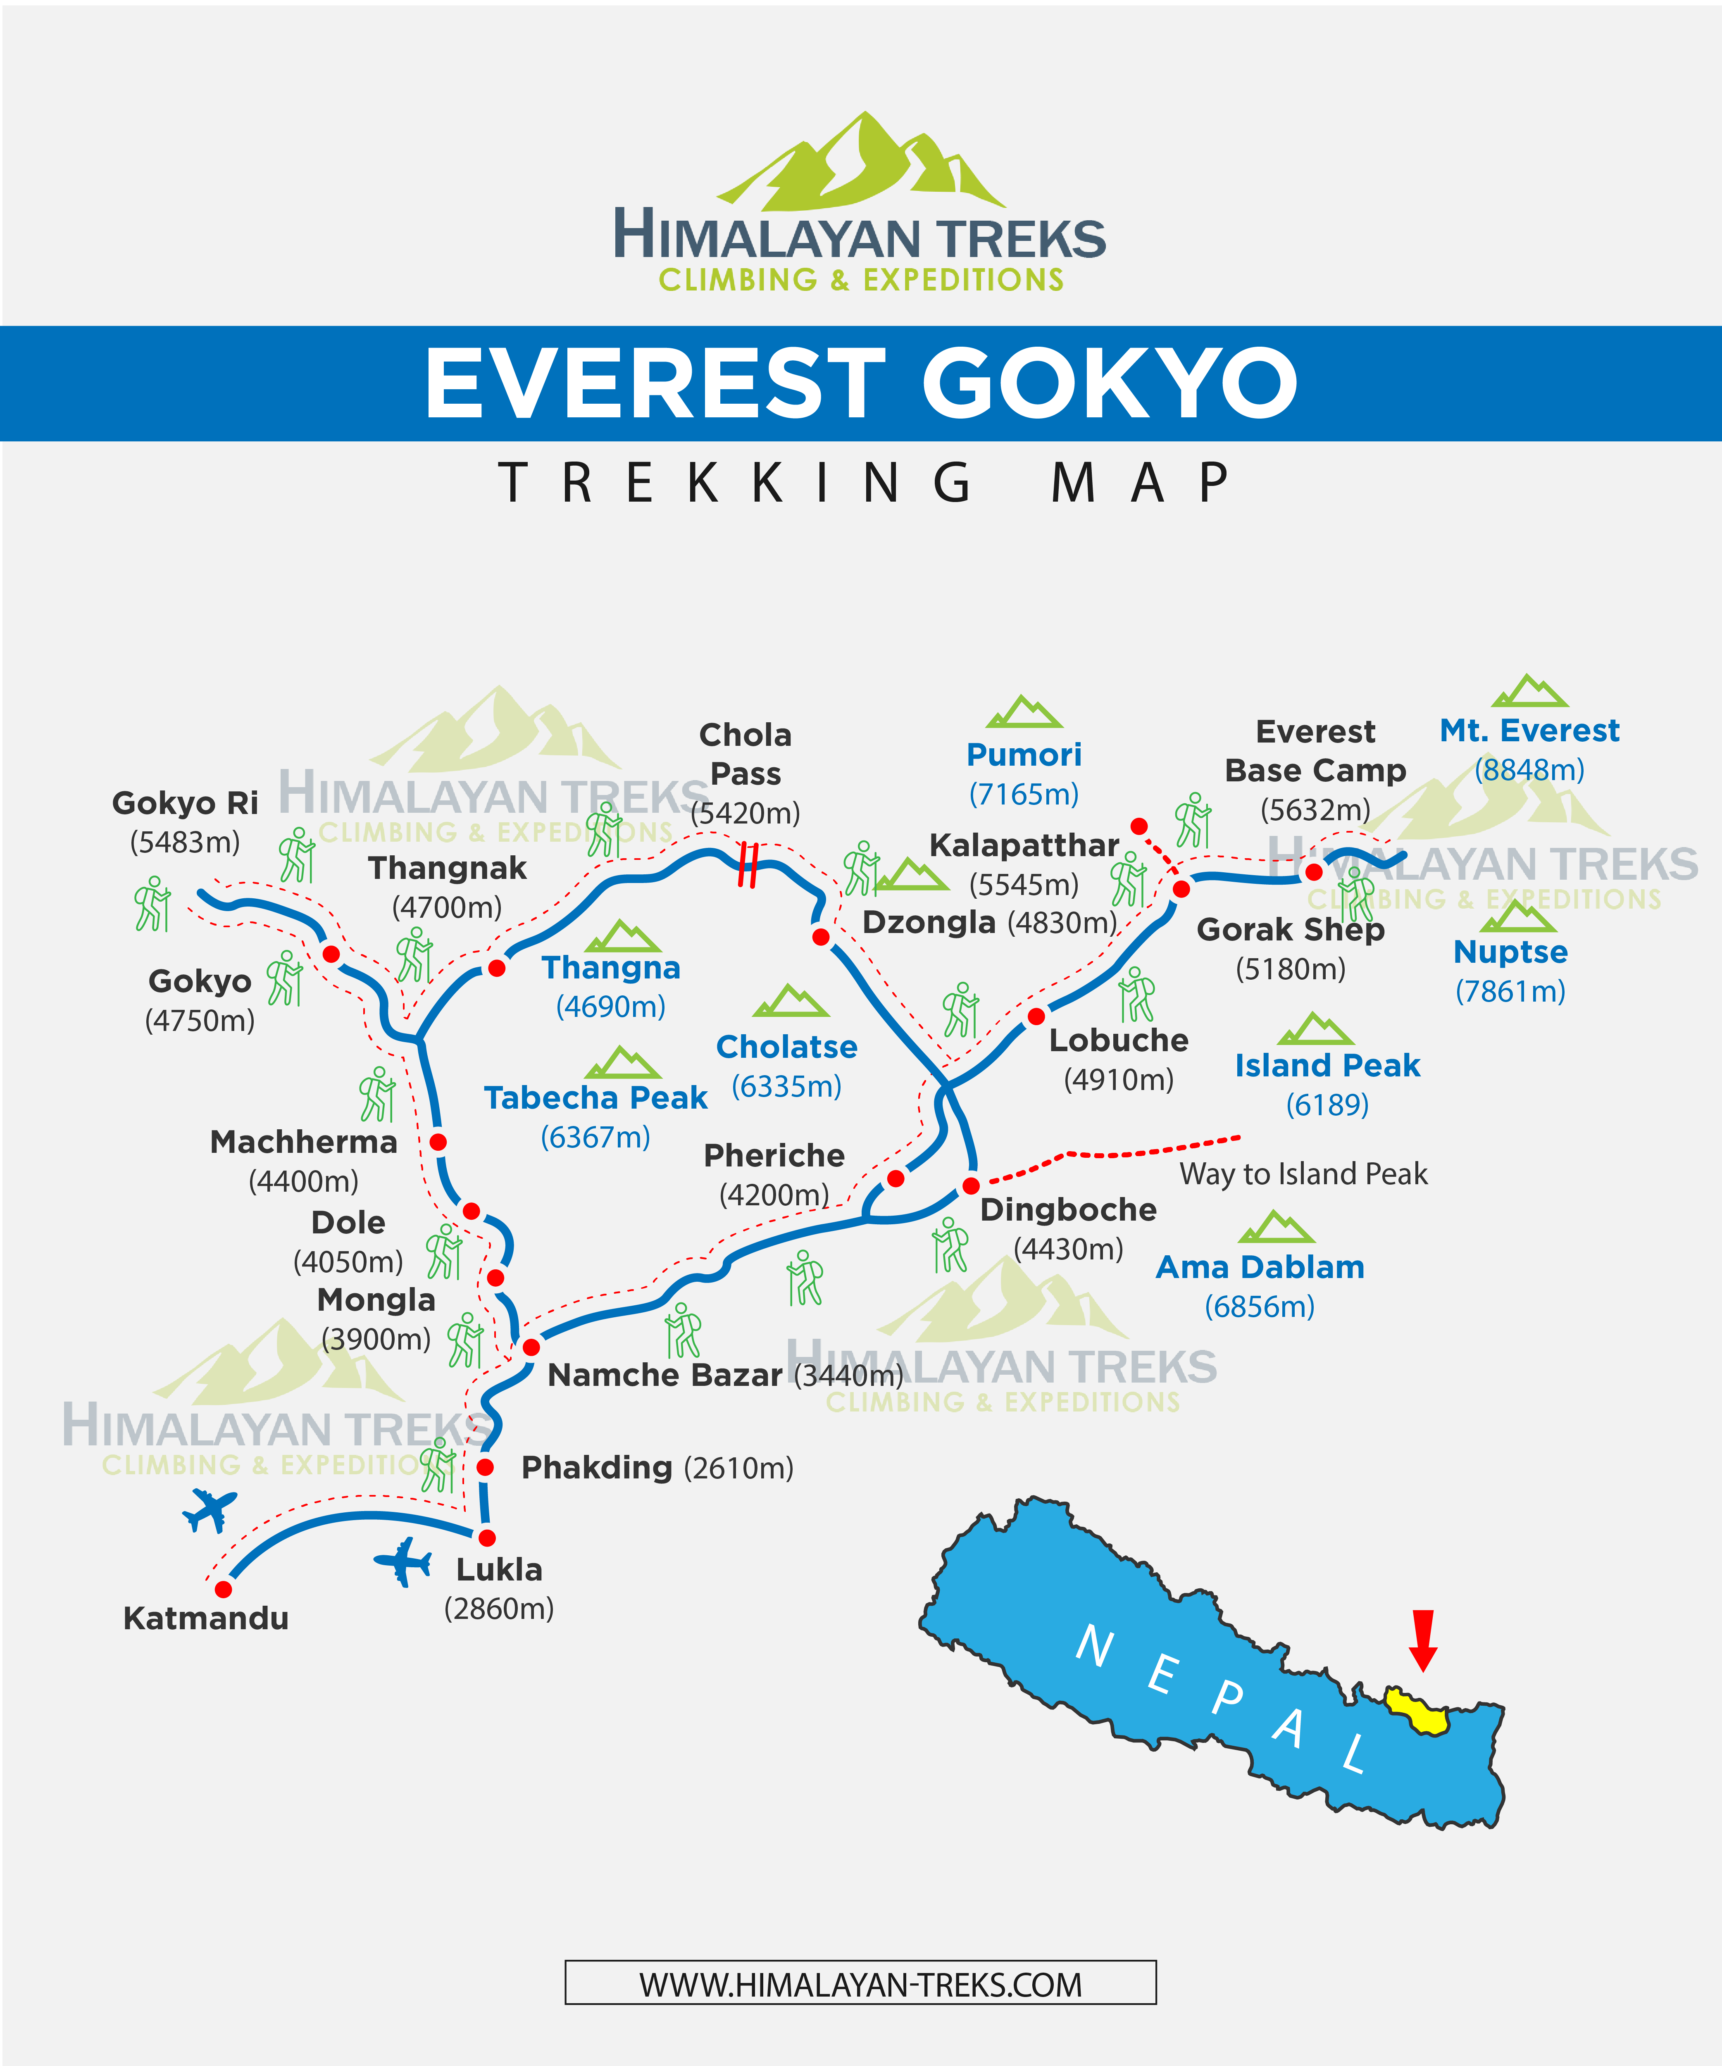 Everest Gokyo Trekking Map